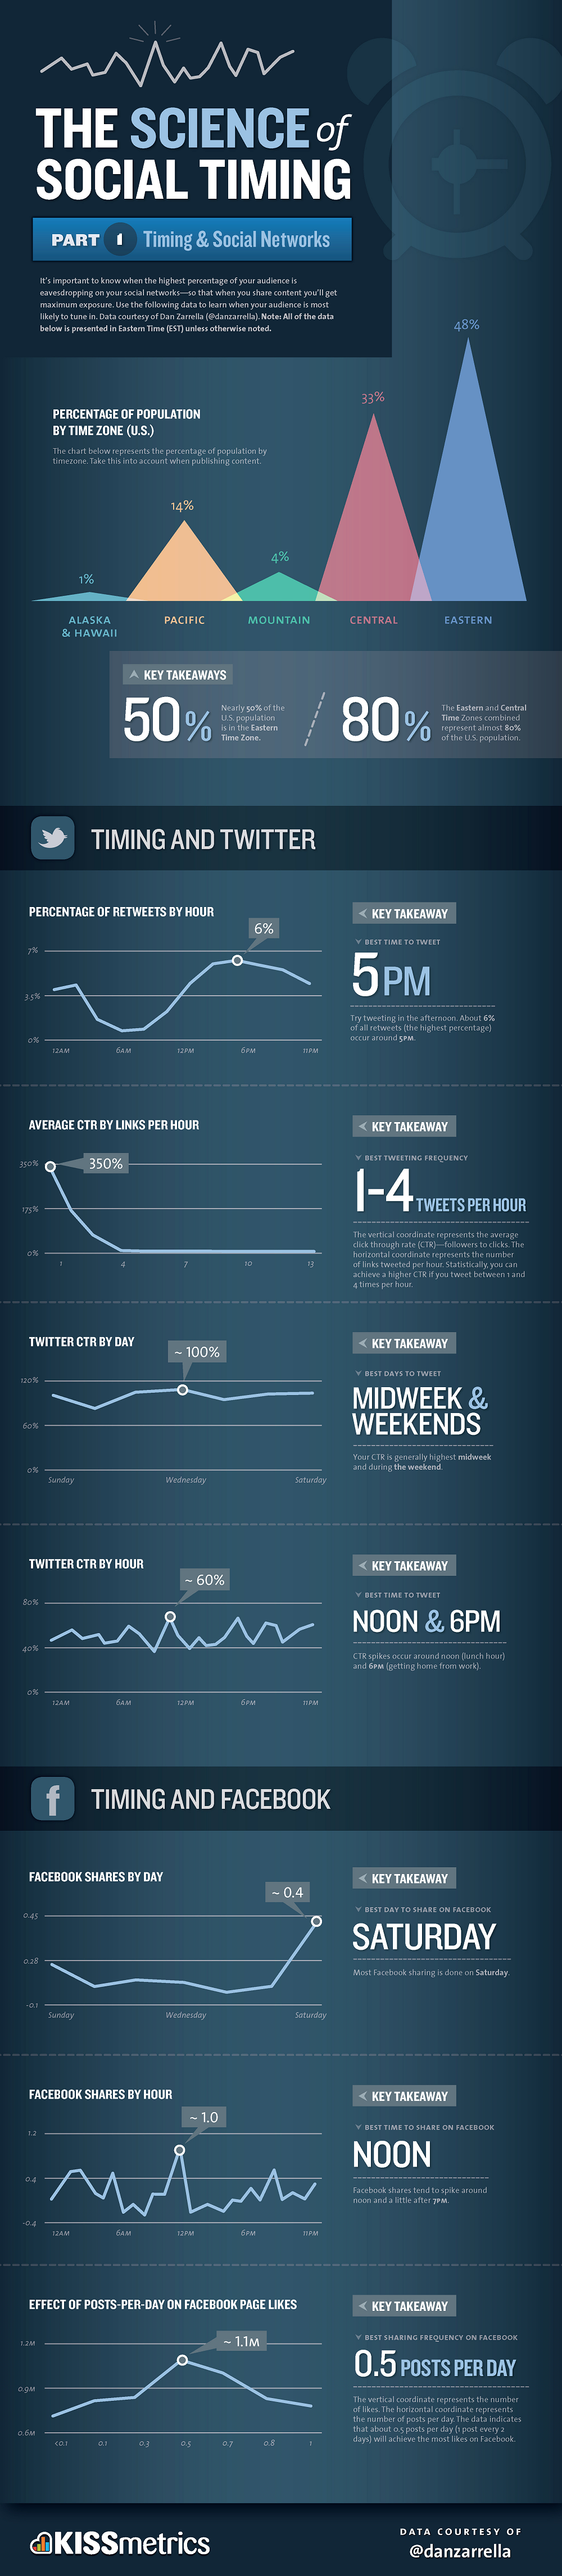 The-Science-Of-Social-Timing-In-Social-Networks-infographic